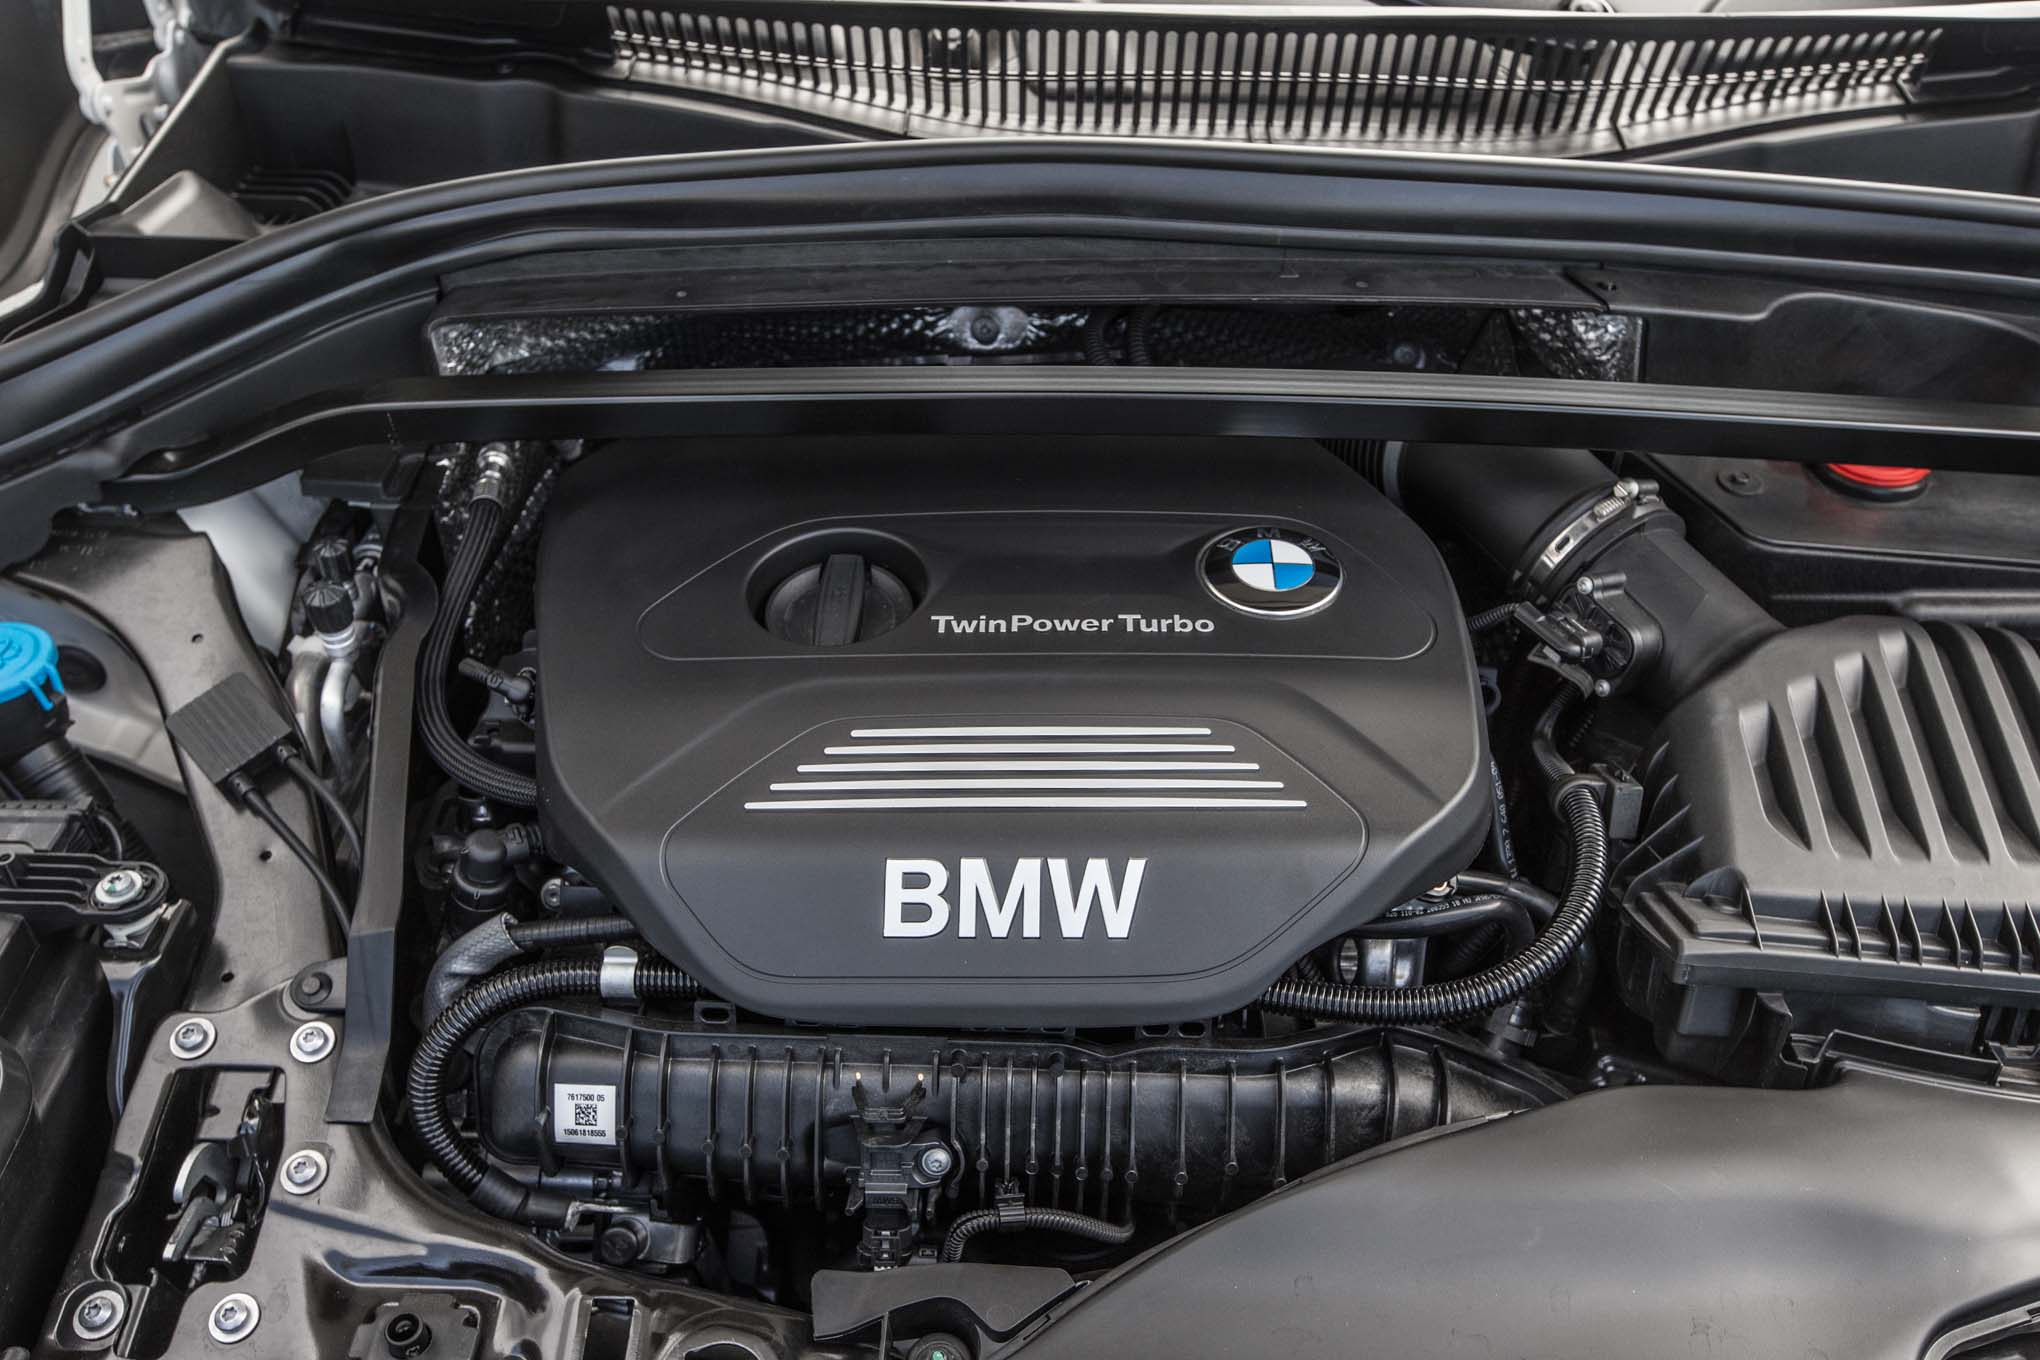 2017 BMW X1 XDrive28i View Engine (View 1 of 23)